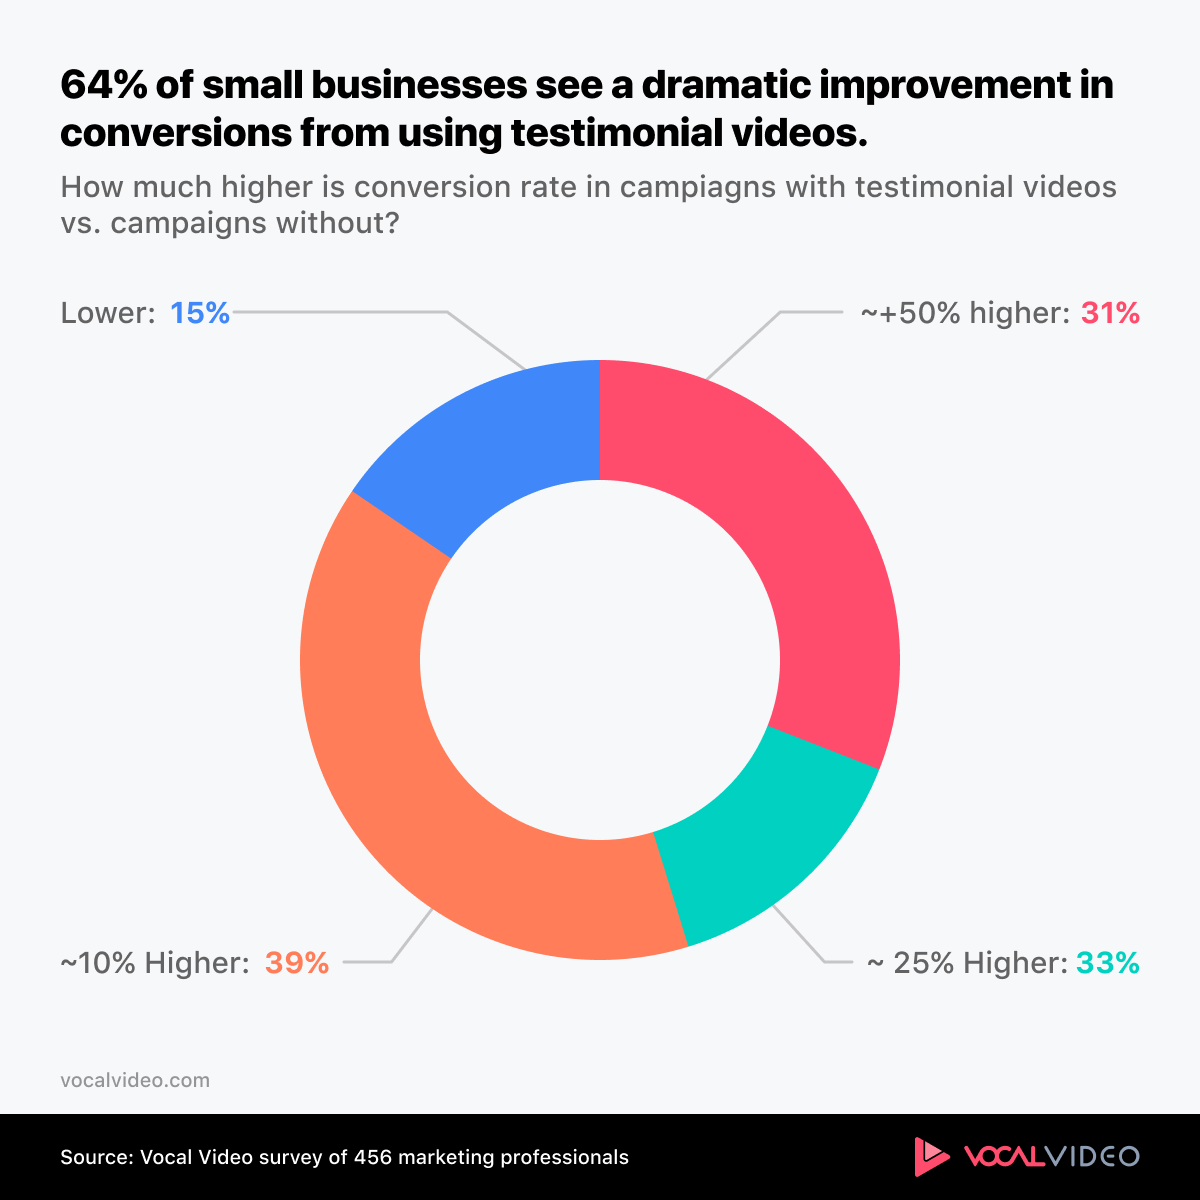 64% of SMB see dramatic conversion improvements with testimonial videos.